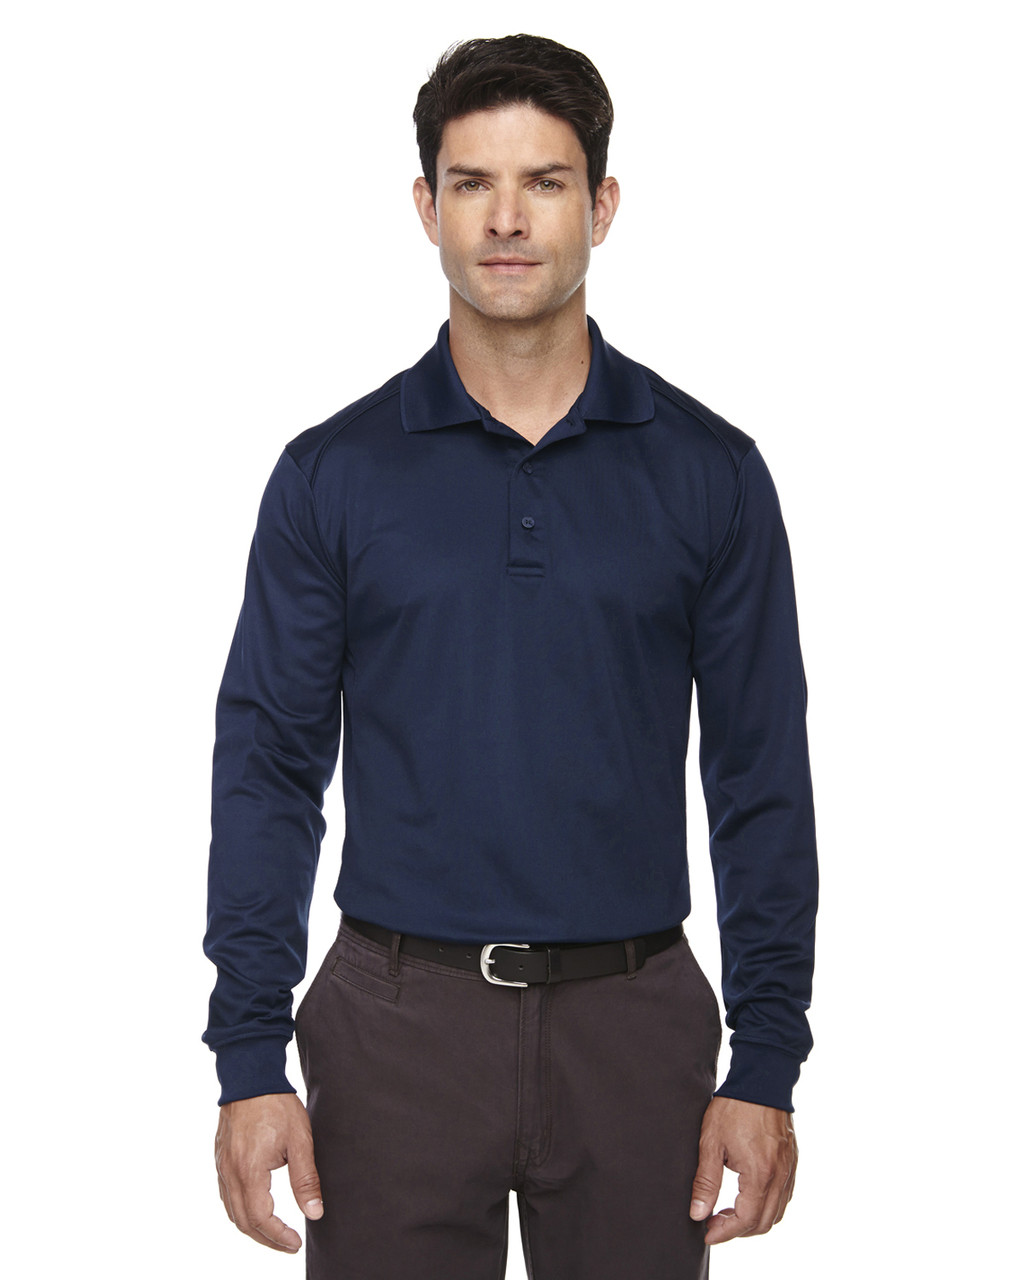 Classic Navy 85111 Ash City - Extreme Eperformance Men's Long-Sleeve Polo Shirt